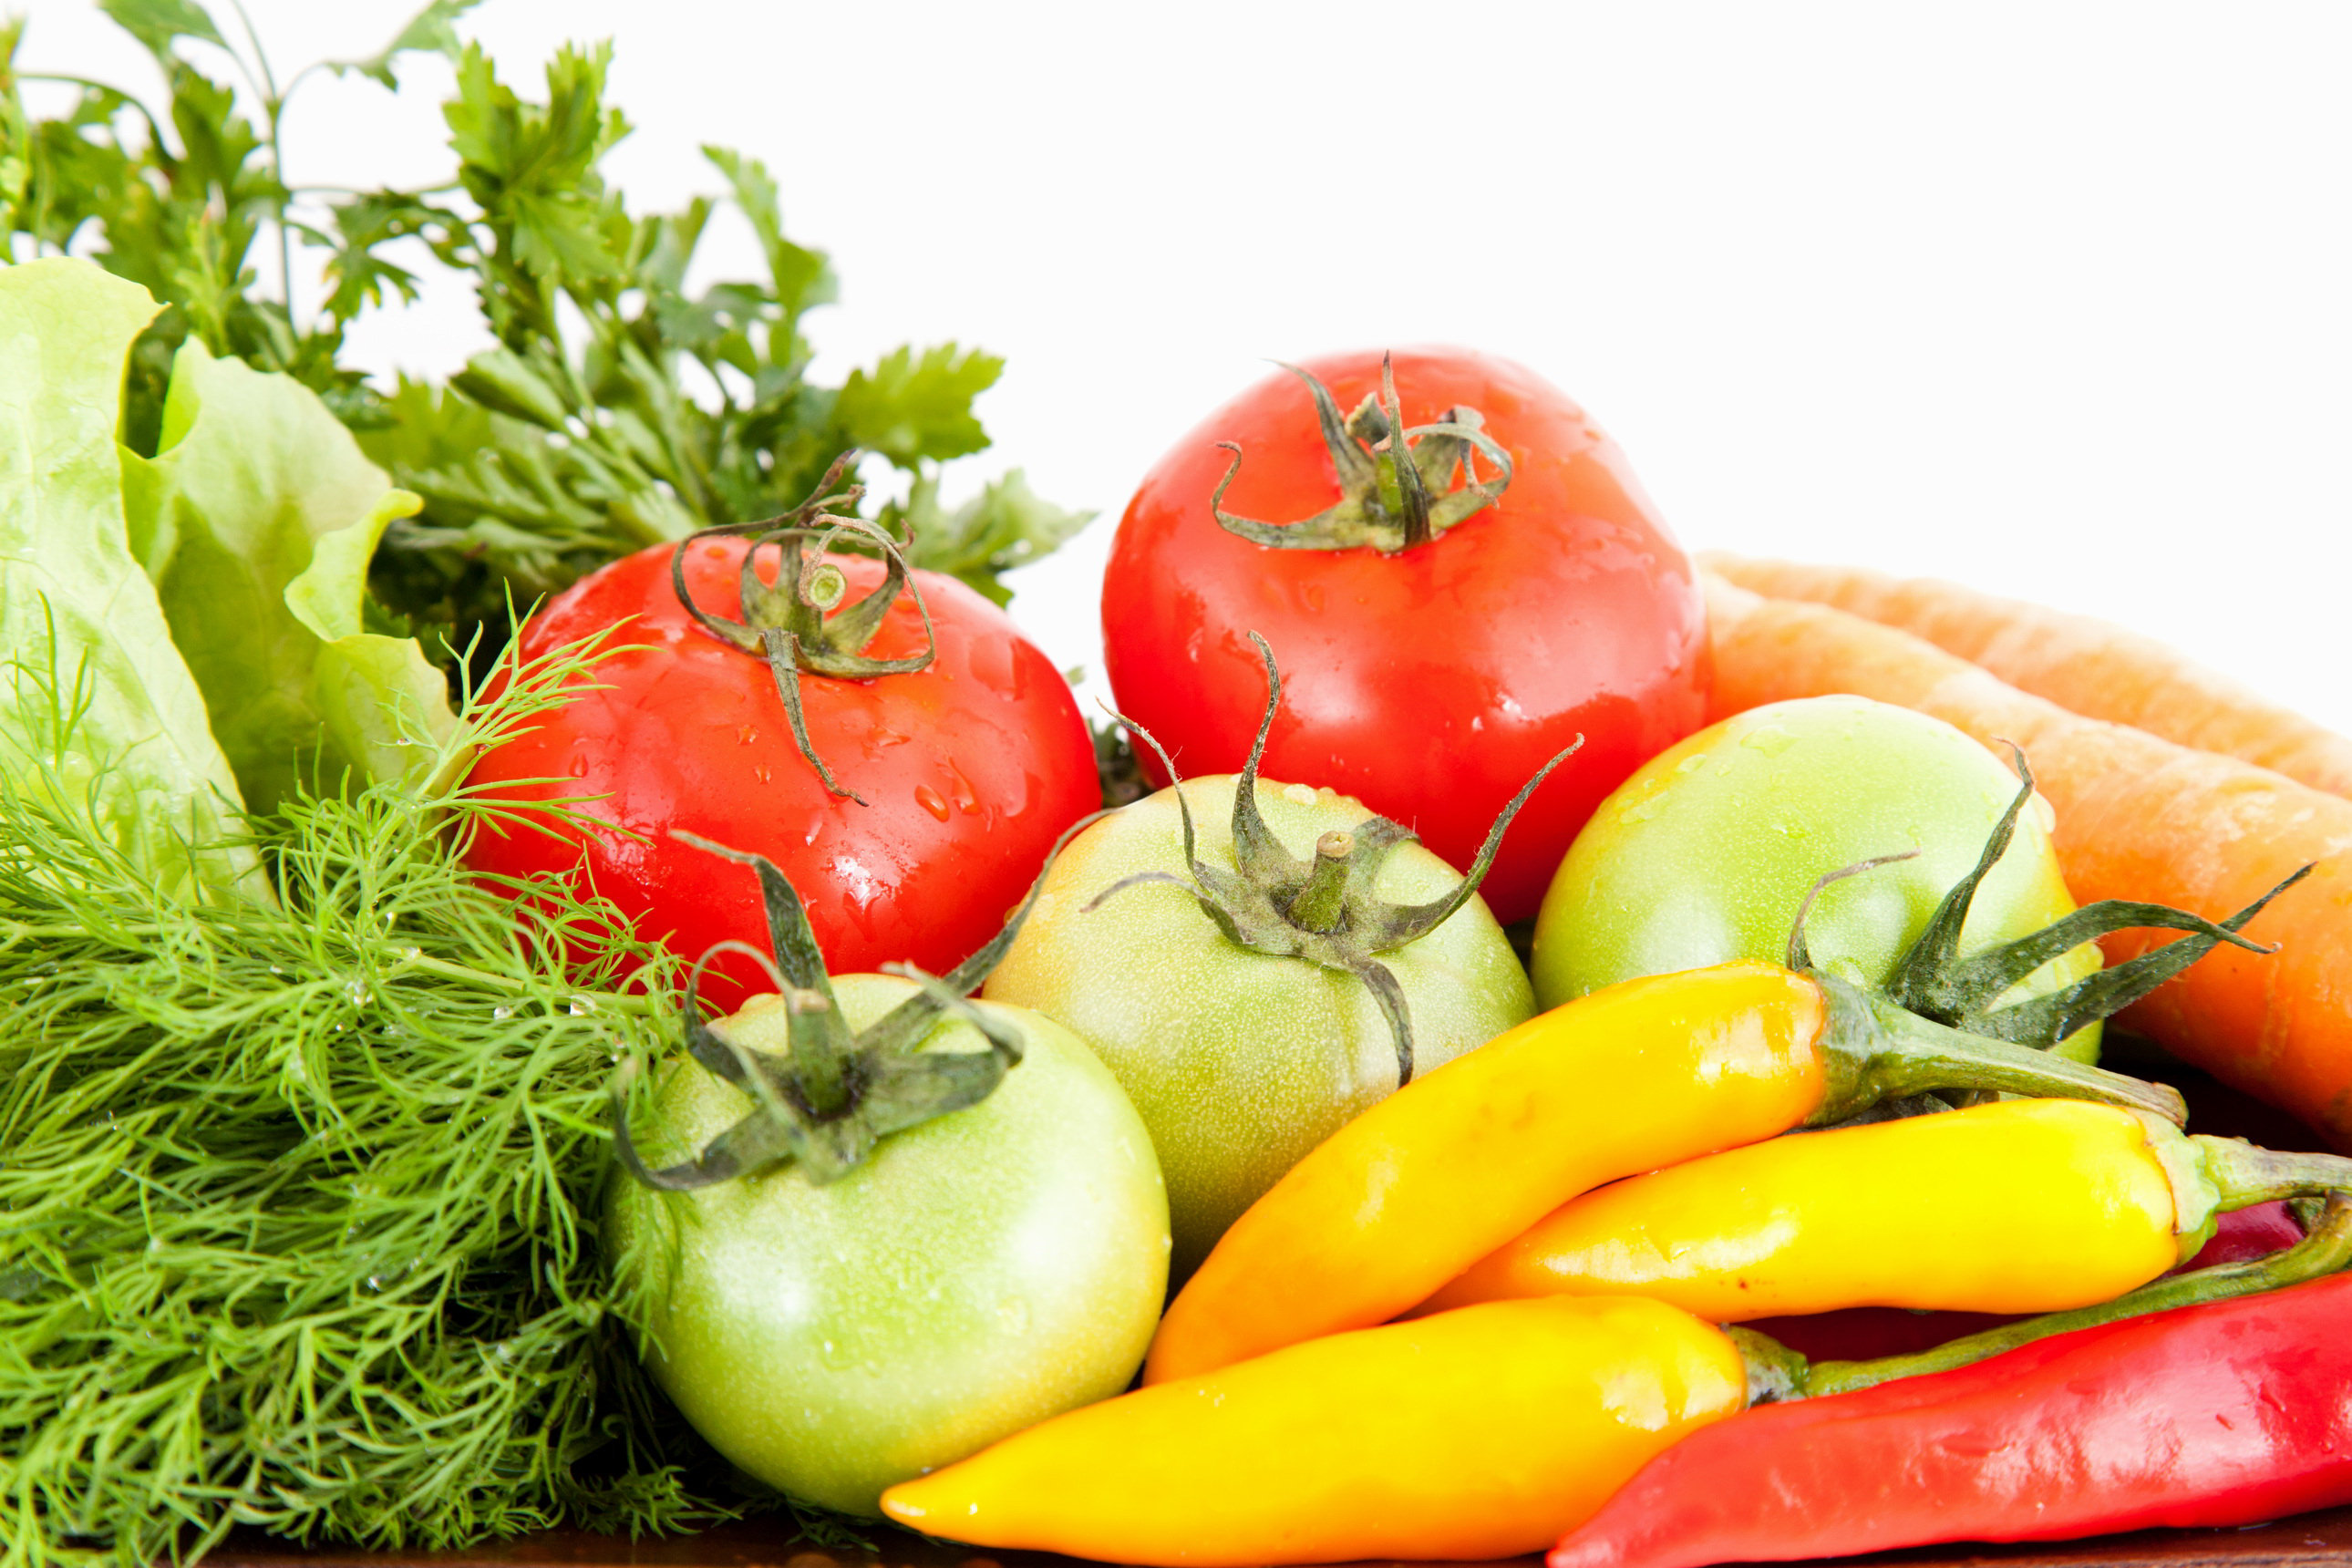 Vegetables Wallpaper 2580x1720